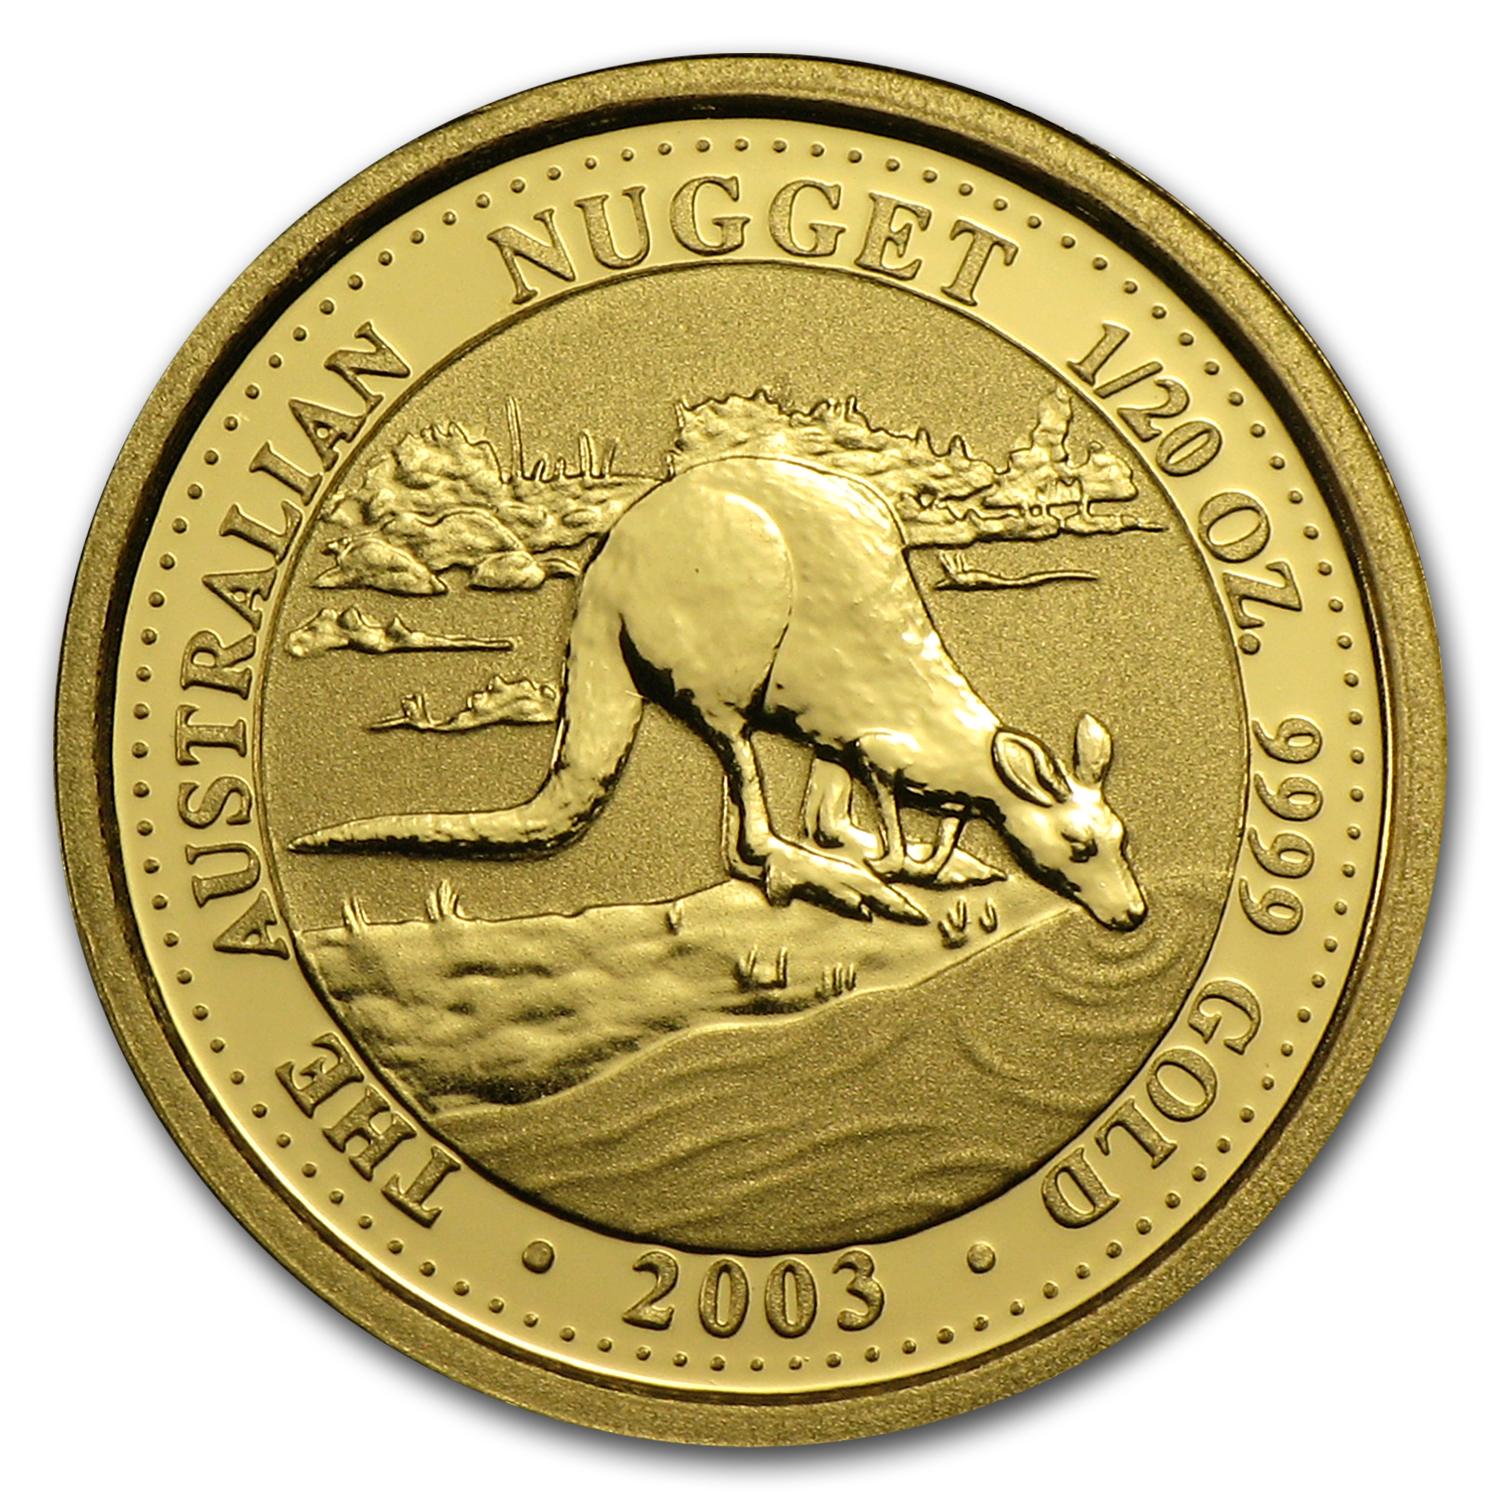 2003 1/20 oz Australian Gold Nugget